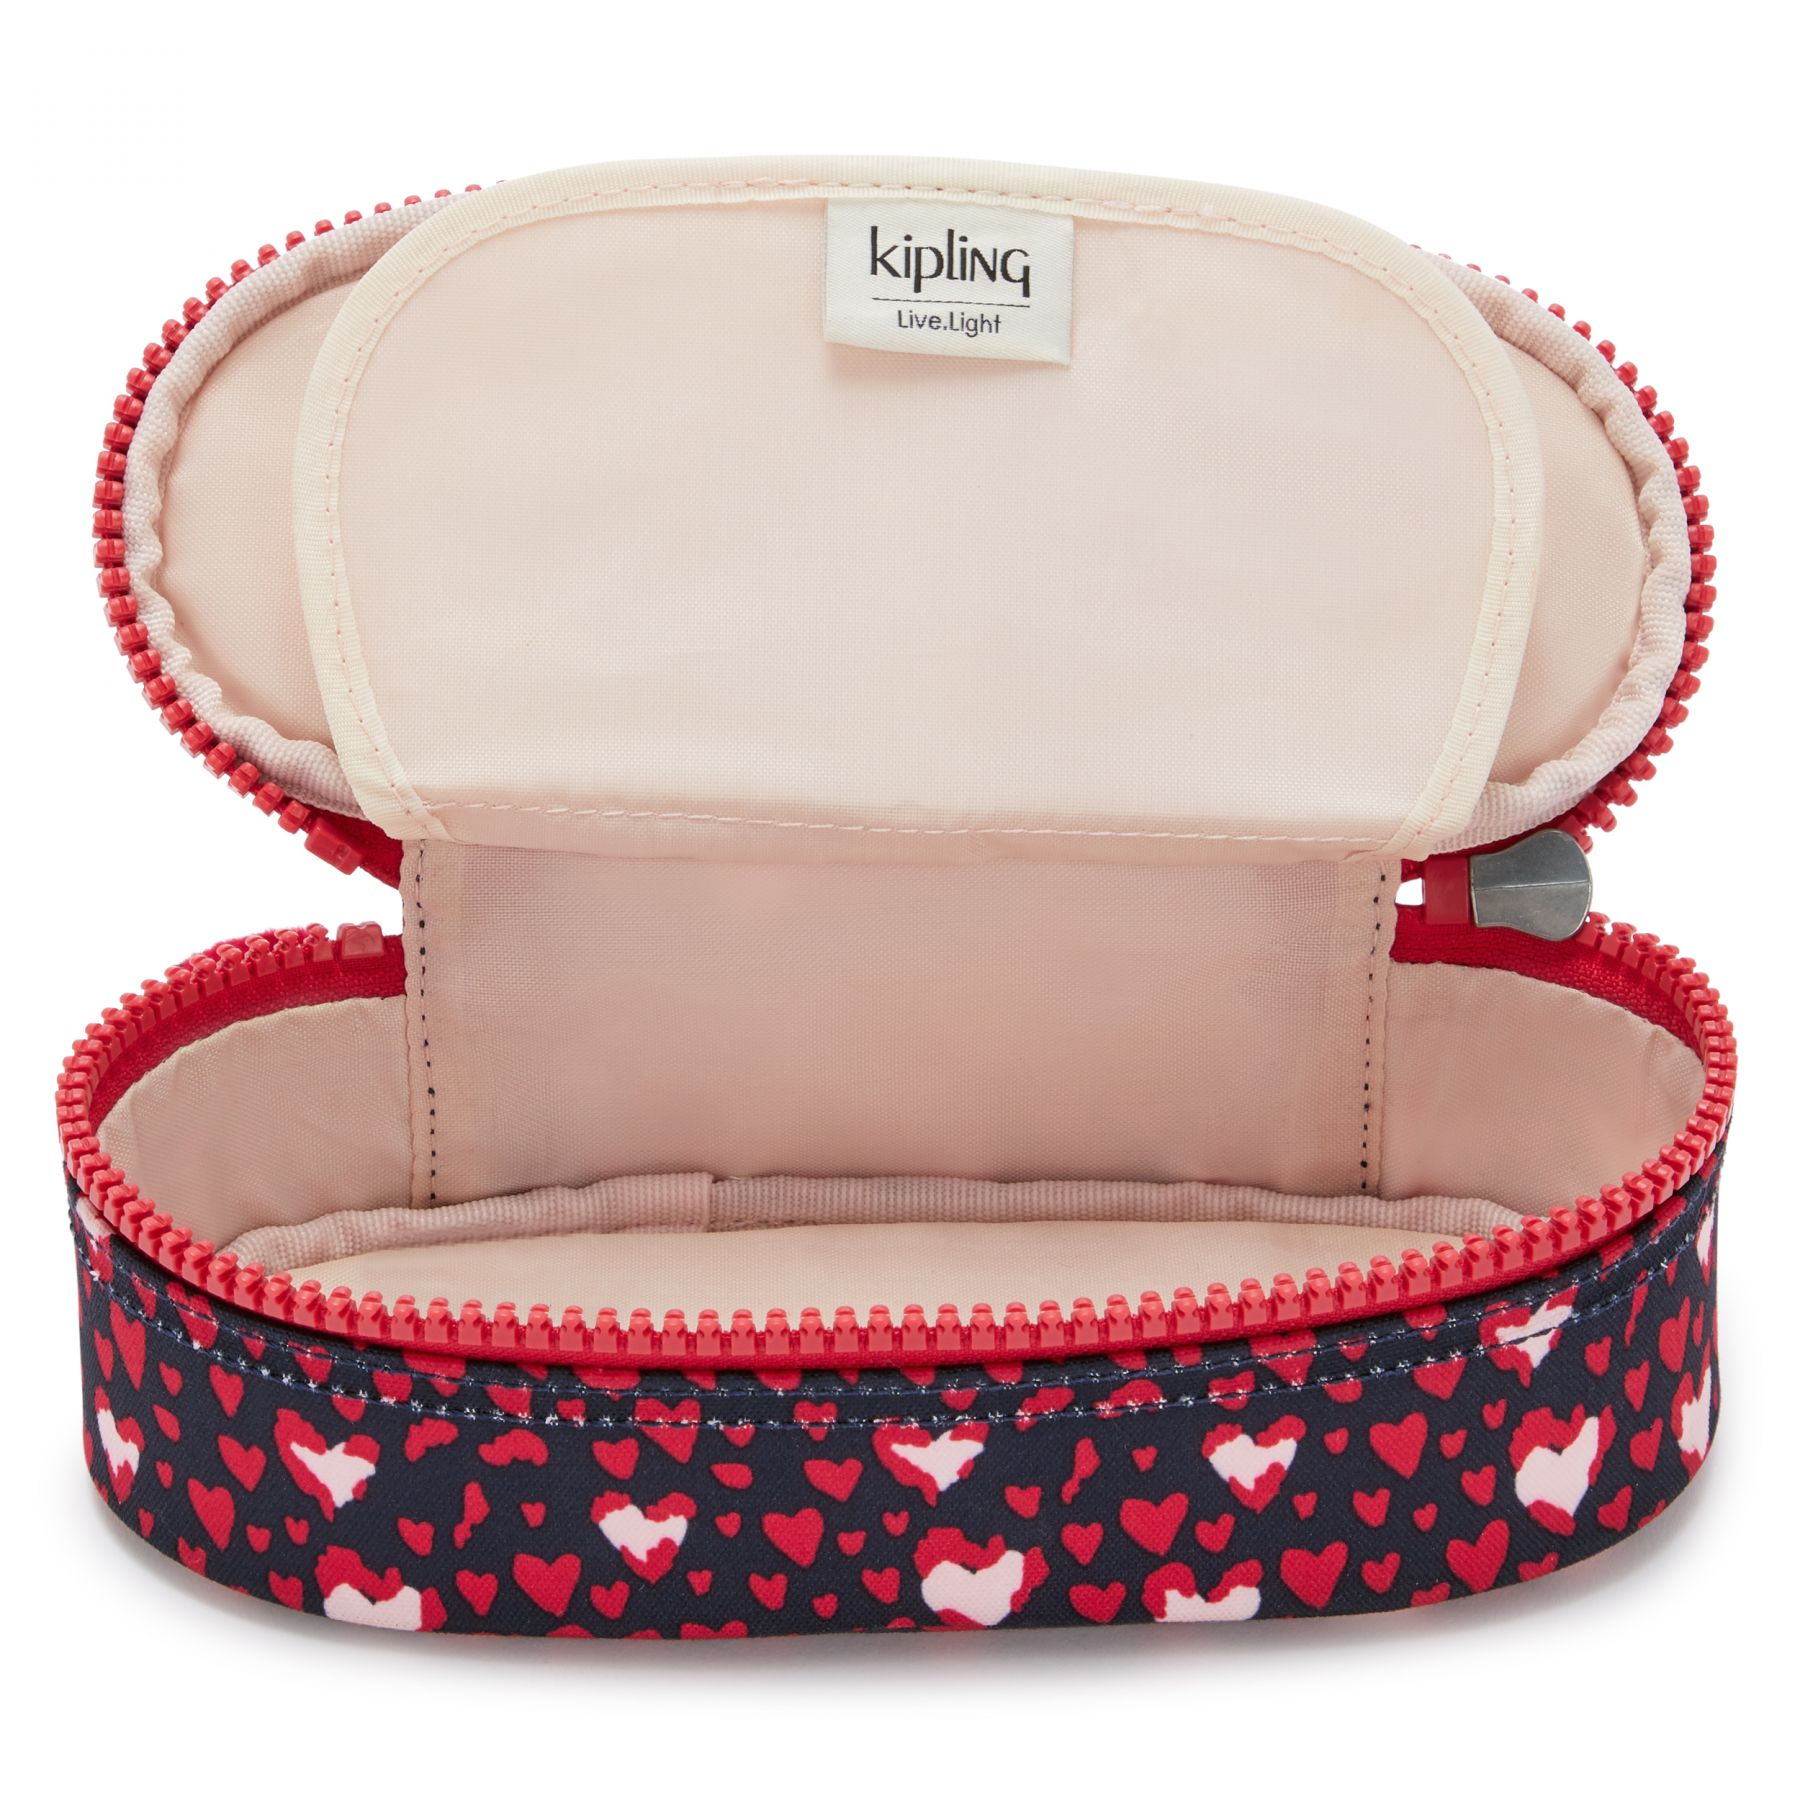 DUOBOX ACCESSORIES by Kipling